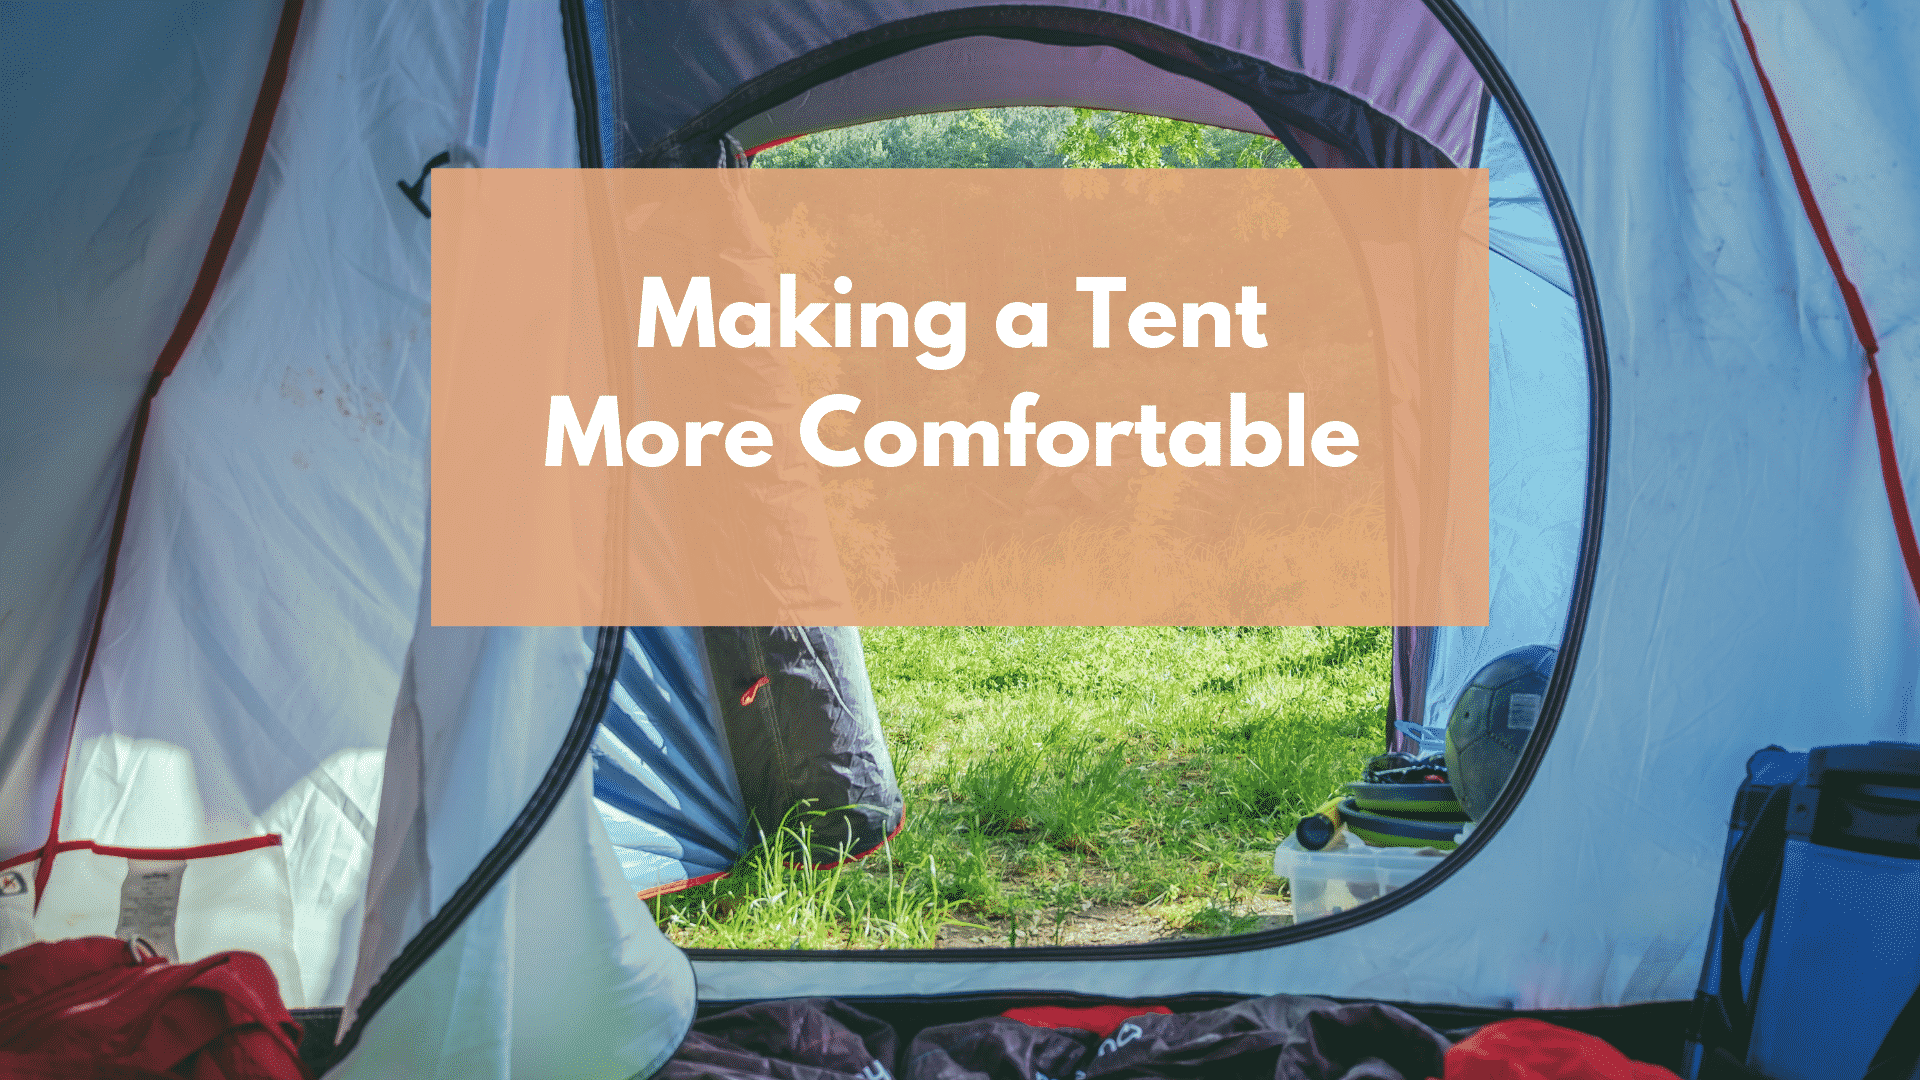 Making a tent more comfortable